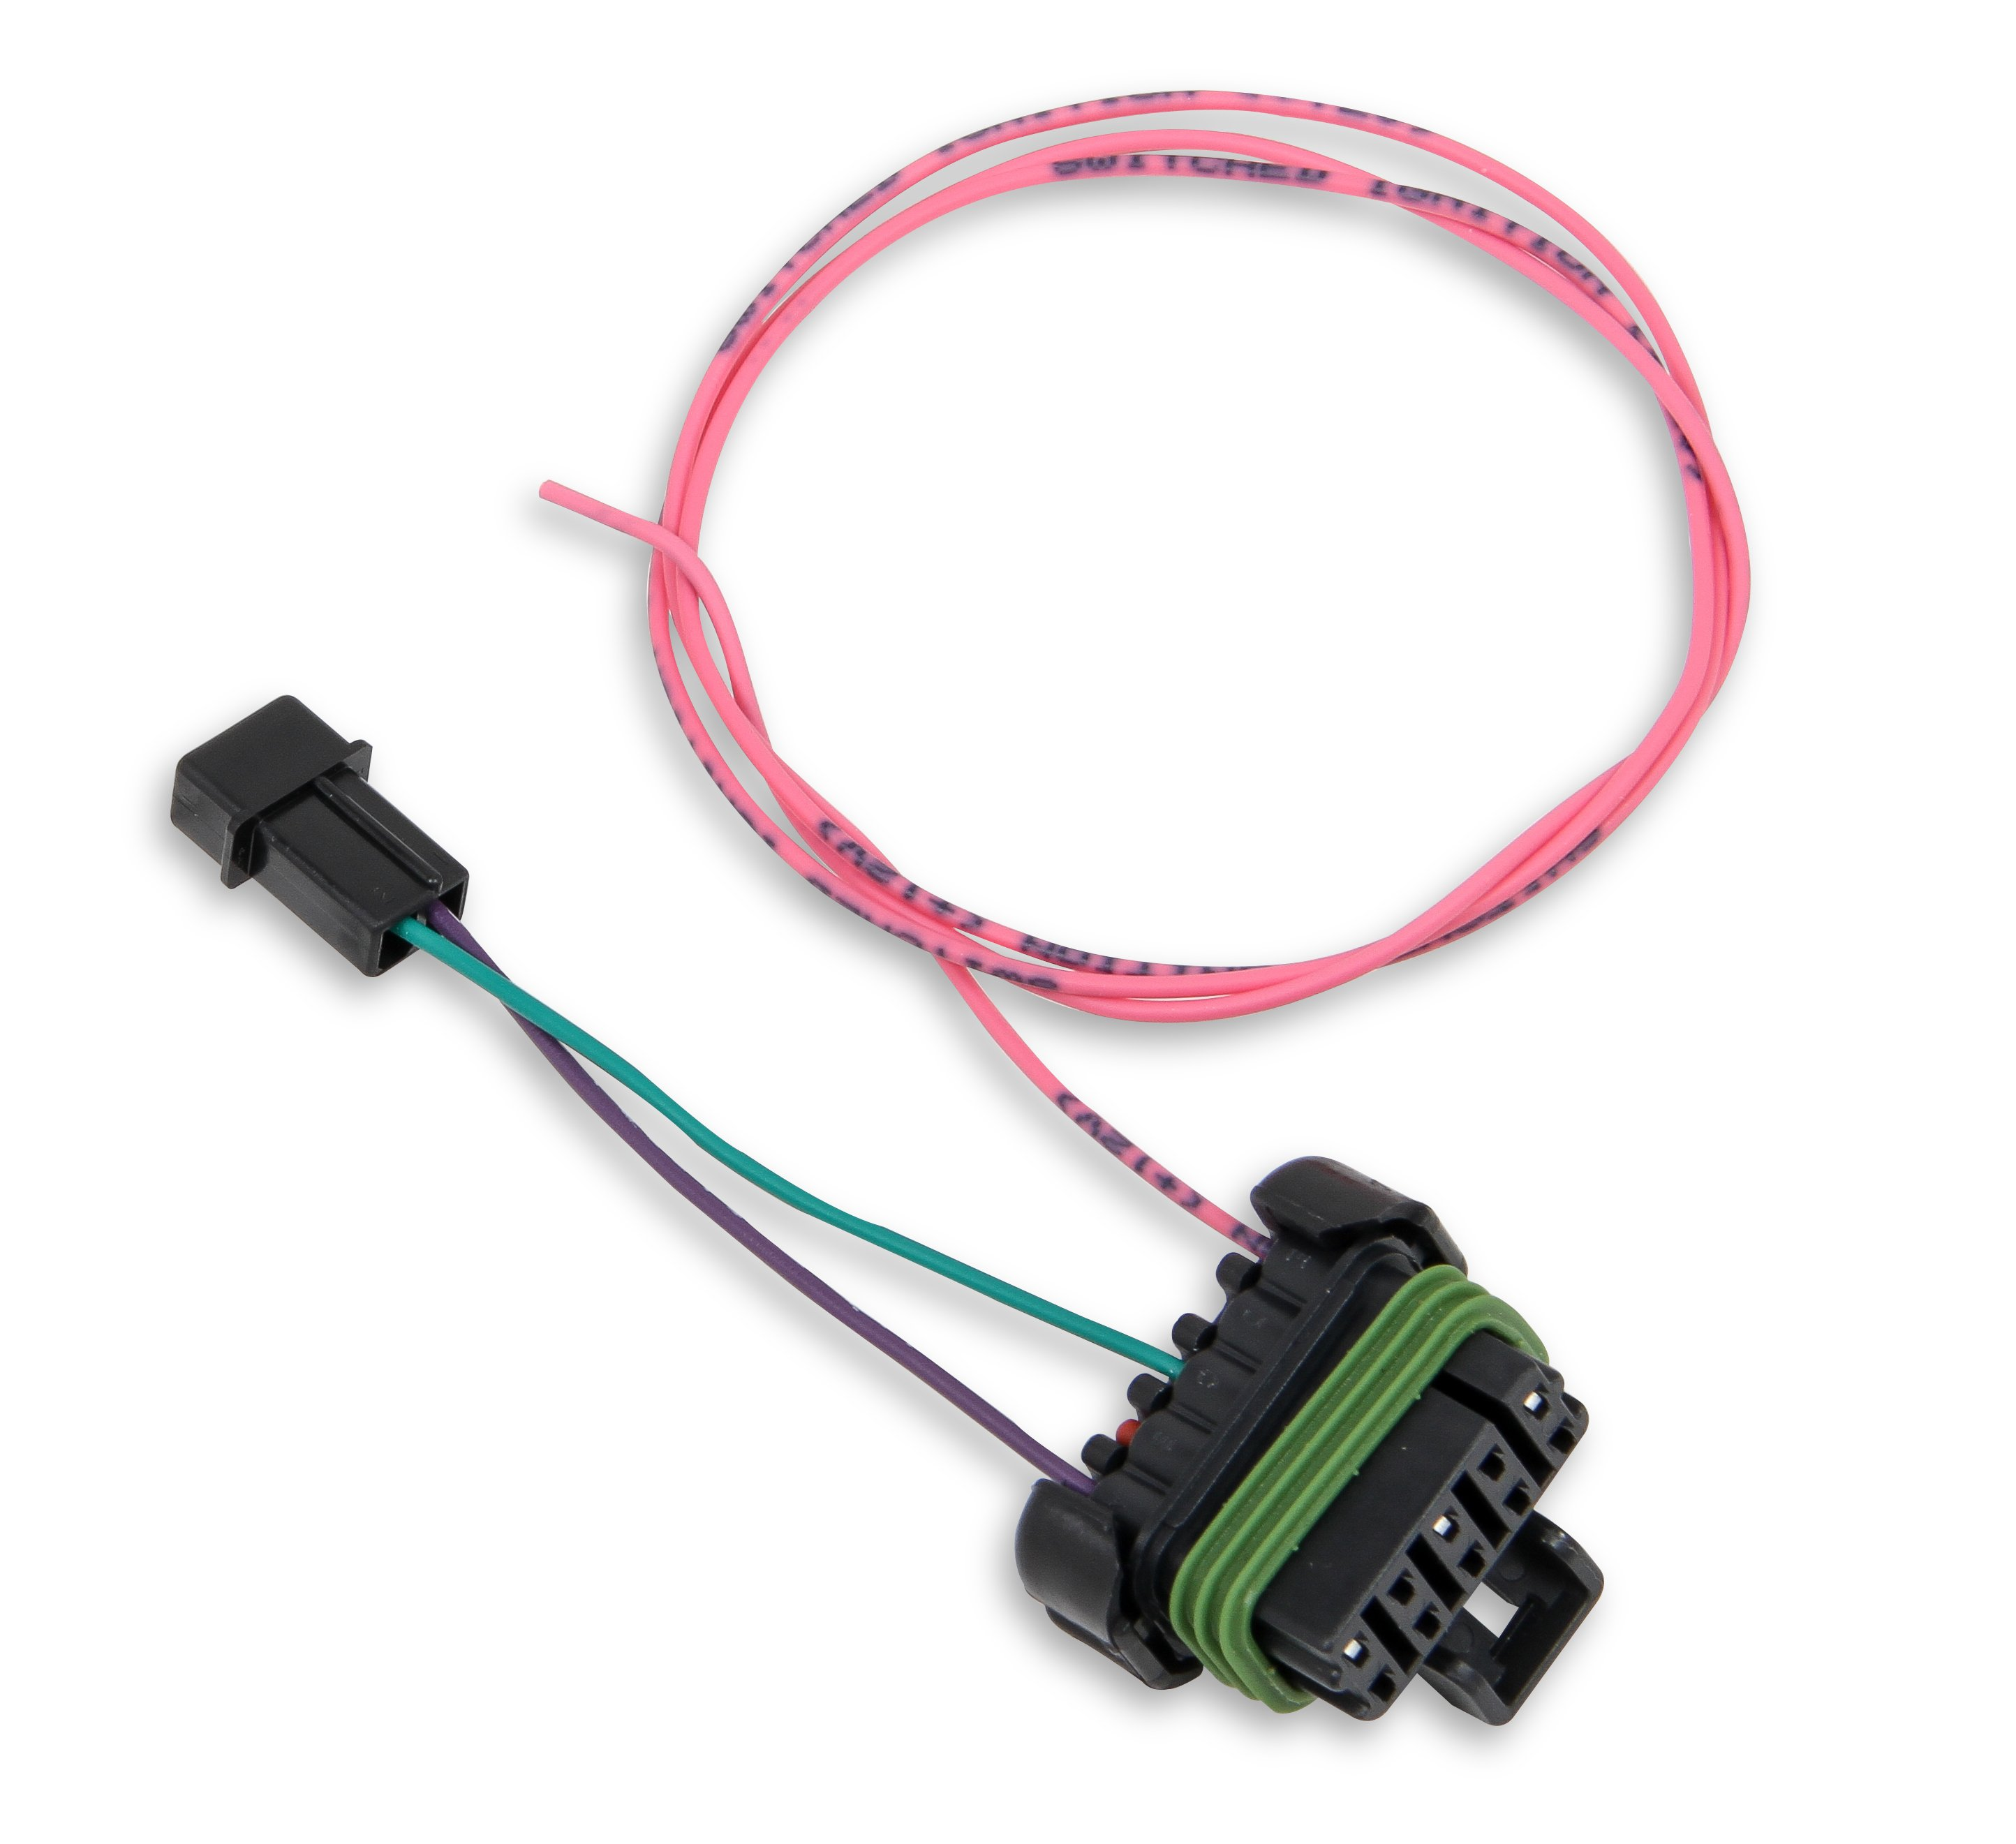 558-493 - Sniper EFI to Holley EFI Dual Sync Distributor Adapter Harness  Image